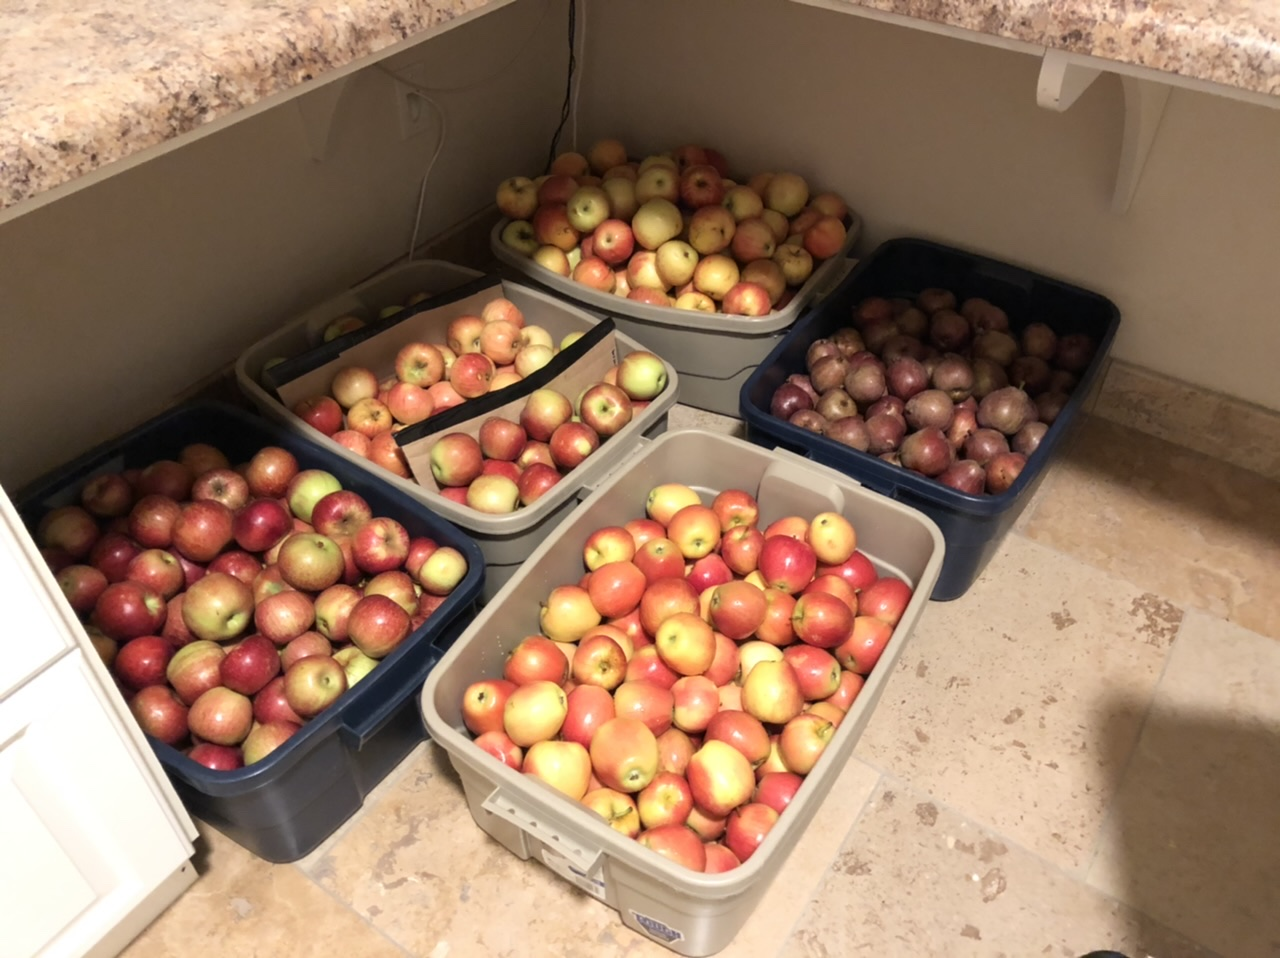 Sweating Apples at Home